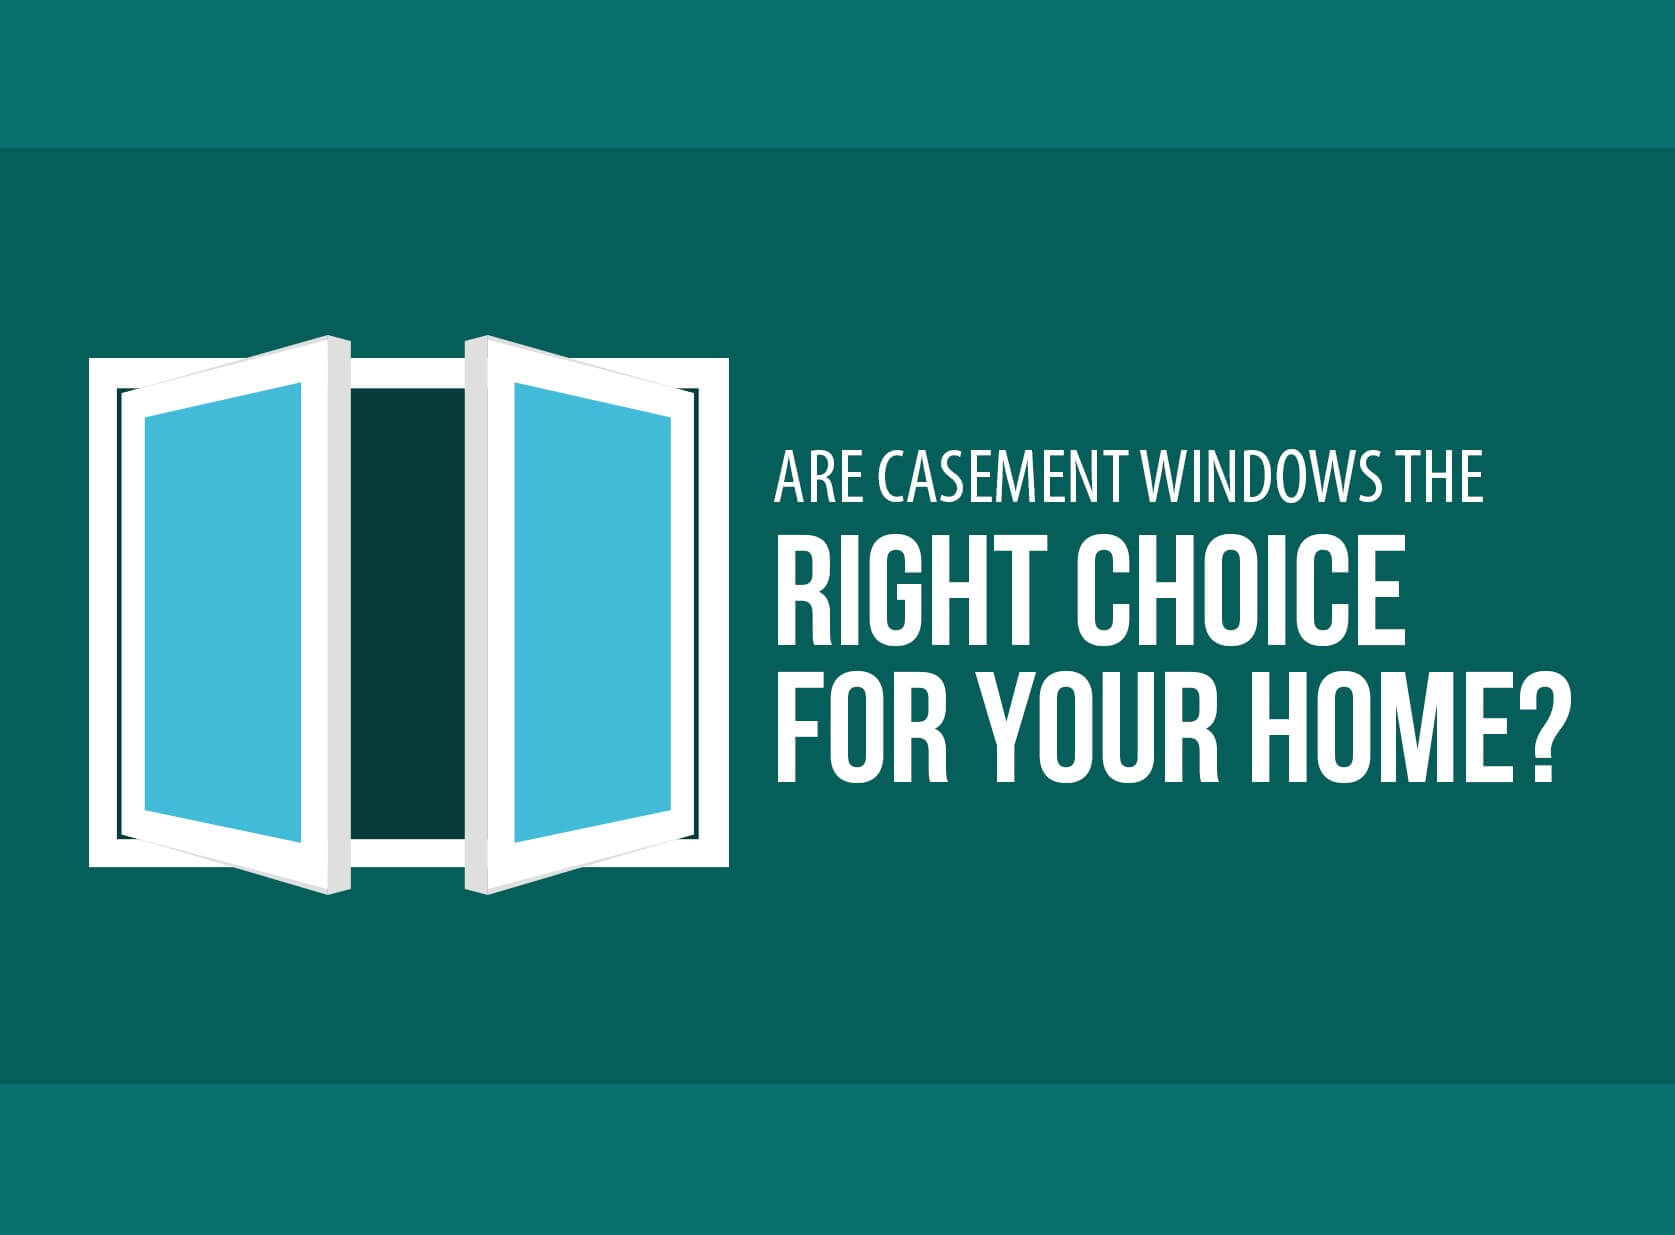 Are Casement Windows The Right Choice For Your Home